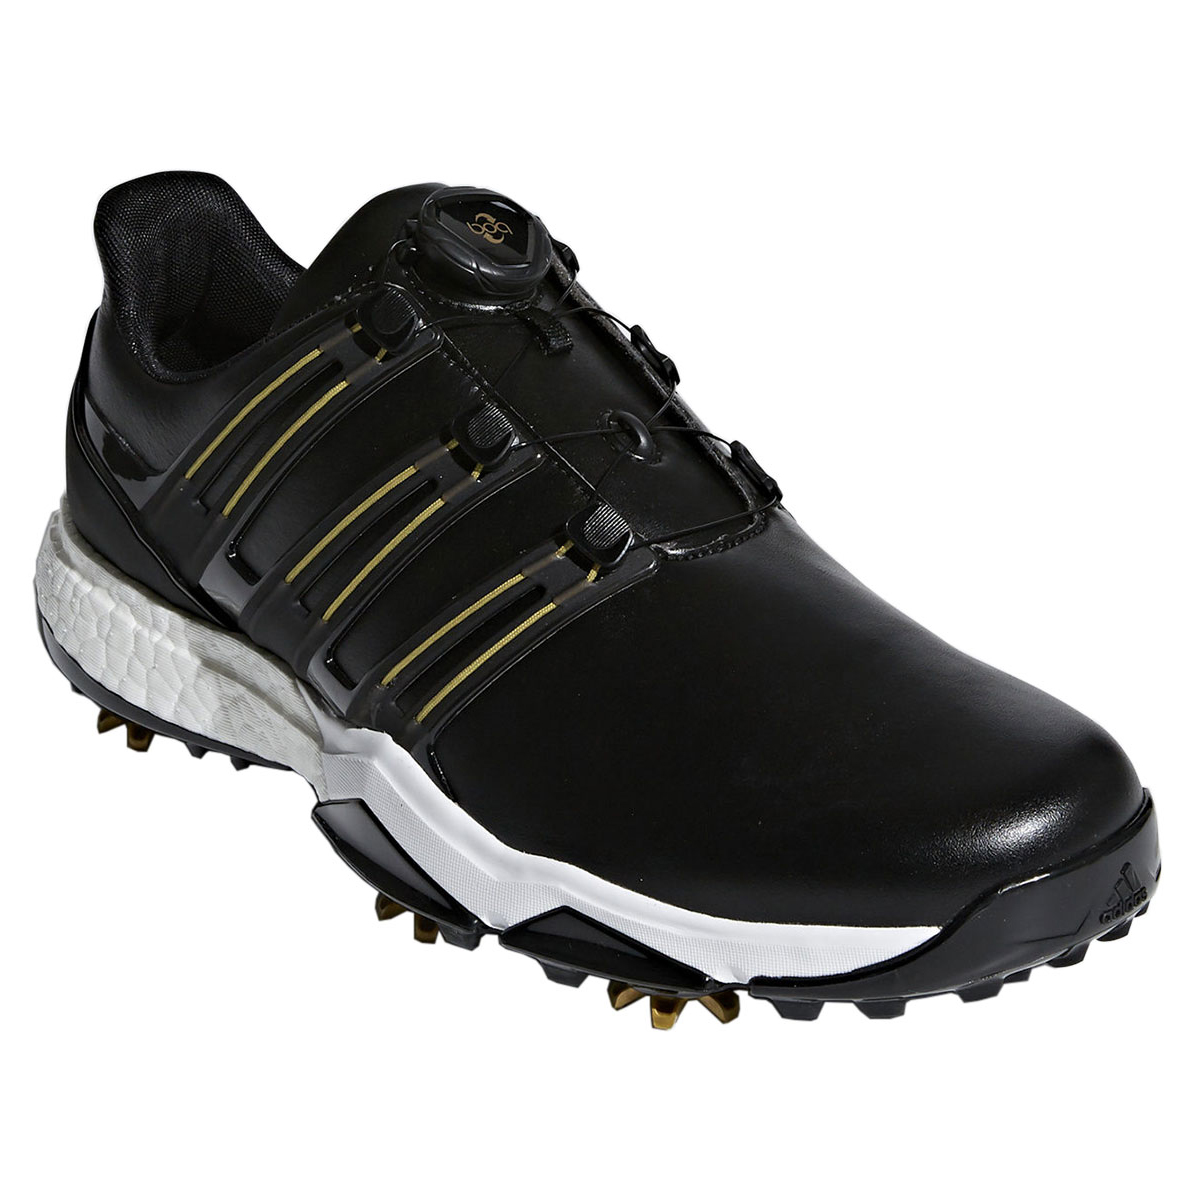 adidas Golf Powerband BOA Boost Shoes from american golf